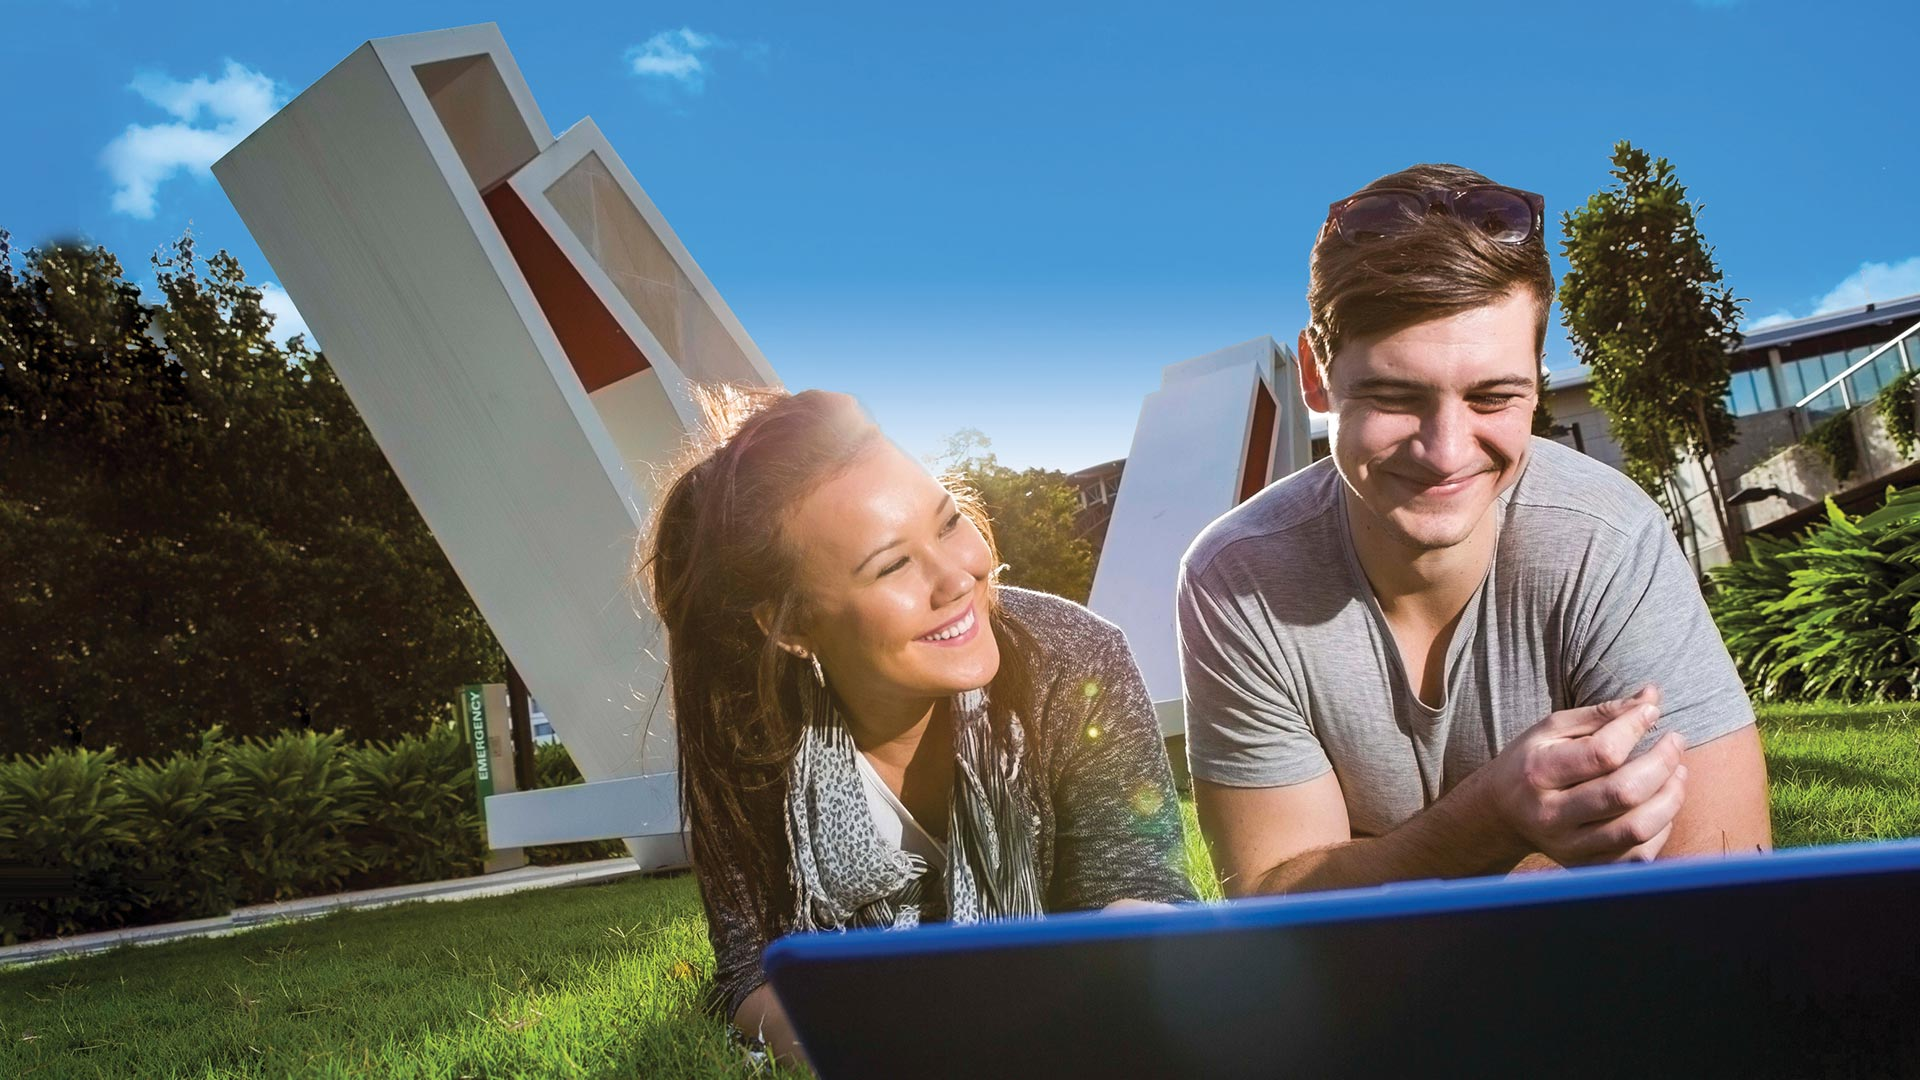 generic-imagery-campus-girl-and-guy-laptop-smiling-on-greenspace-feature-1920x448.jpg